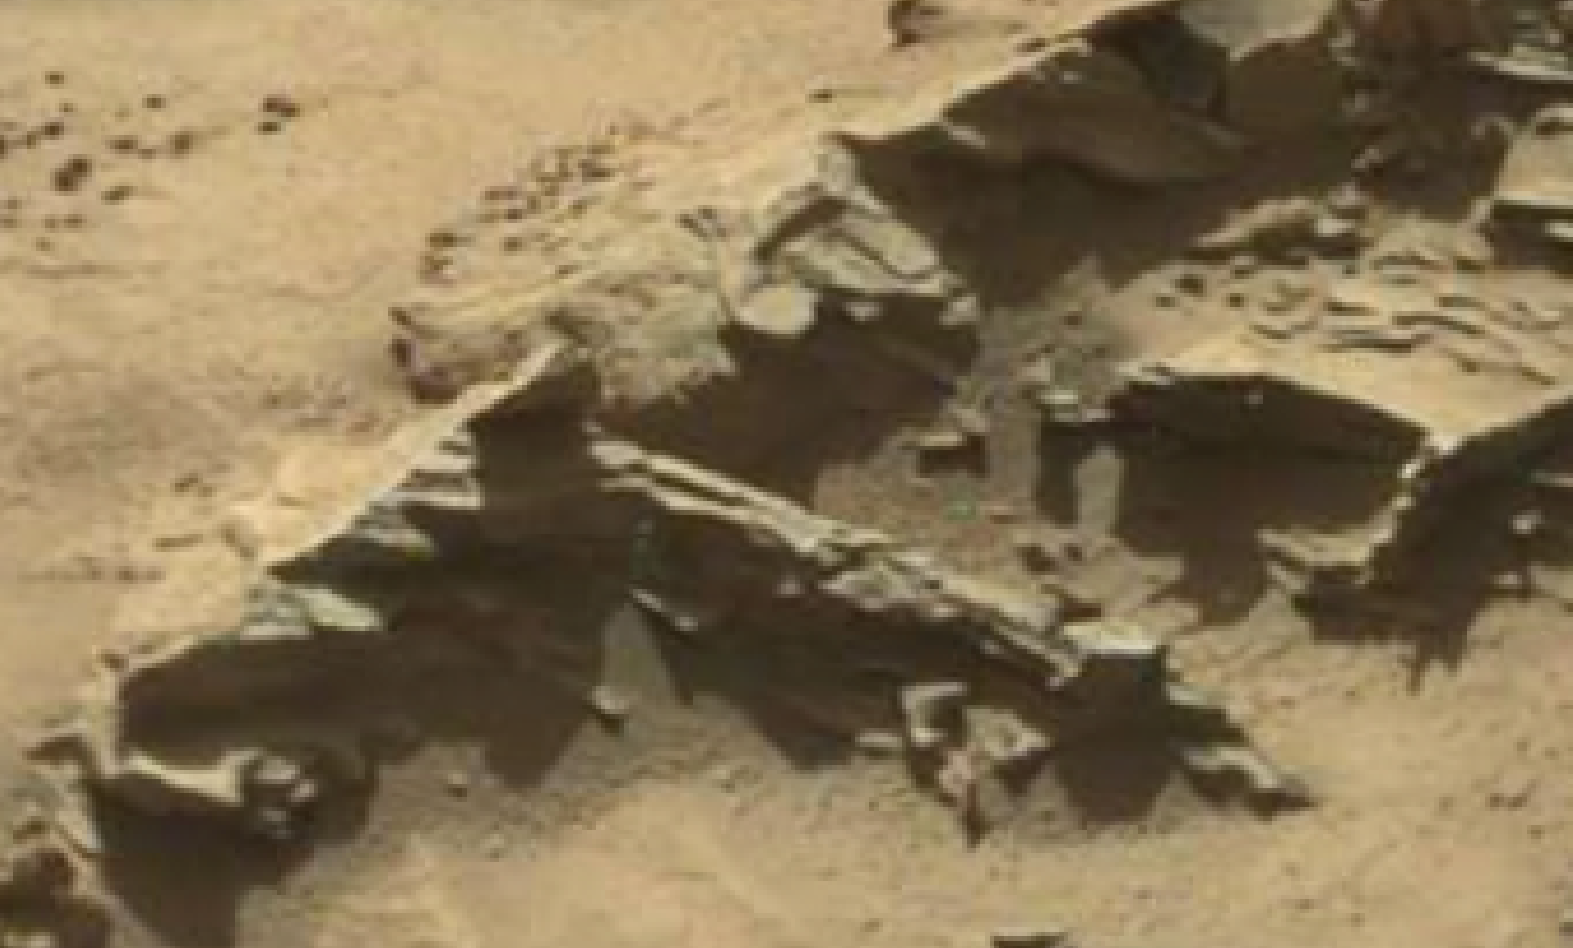 mars sol 1298 anomaly-artifacts 13 was life on mars